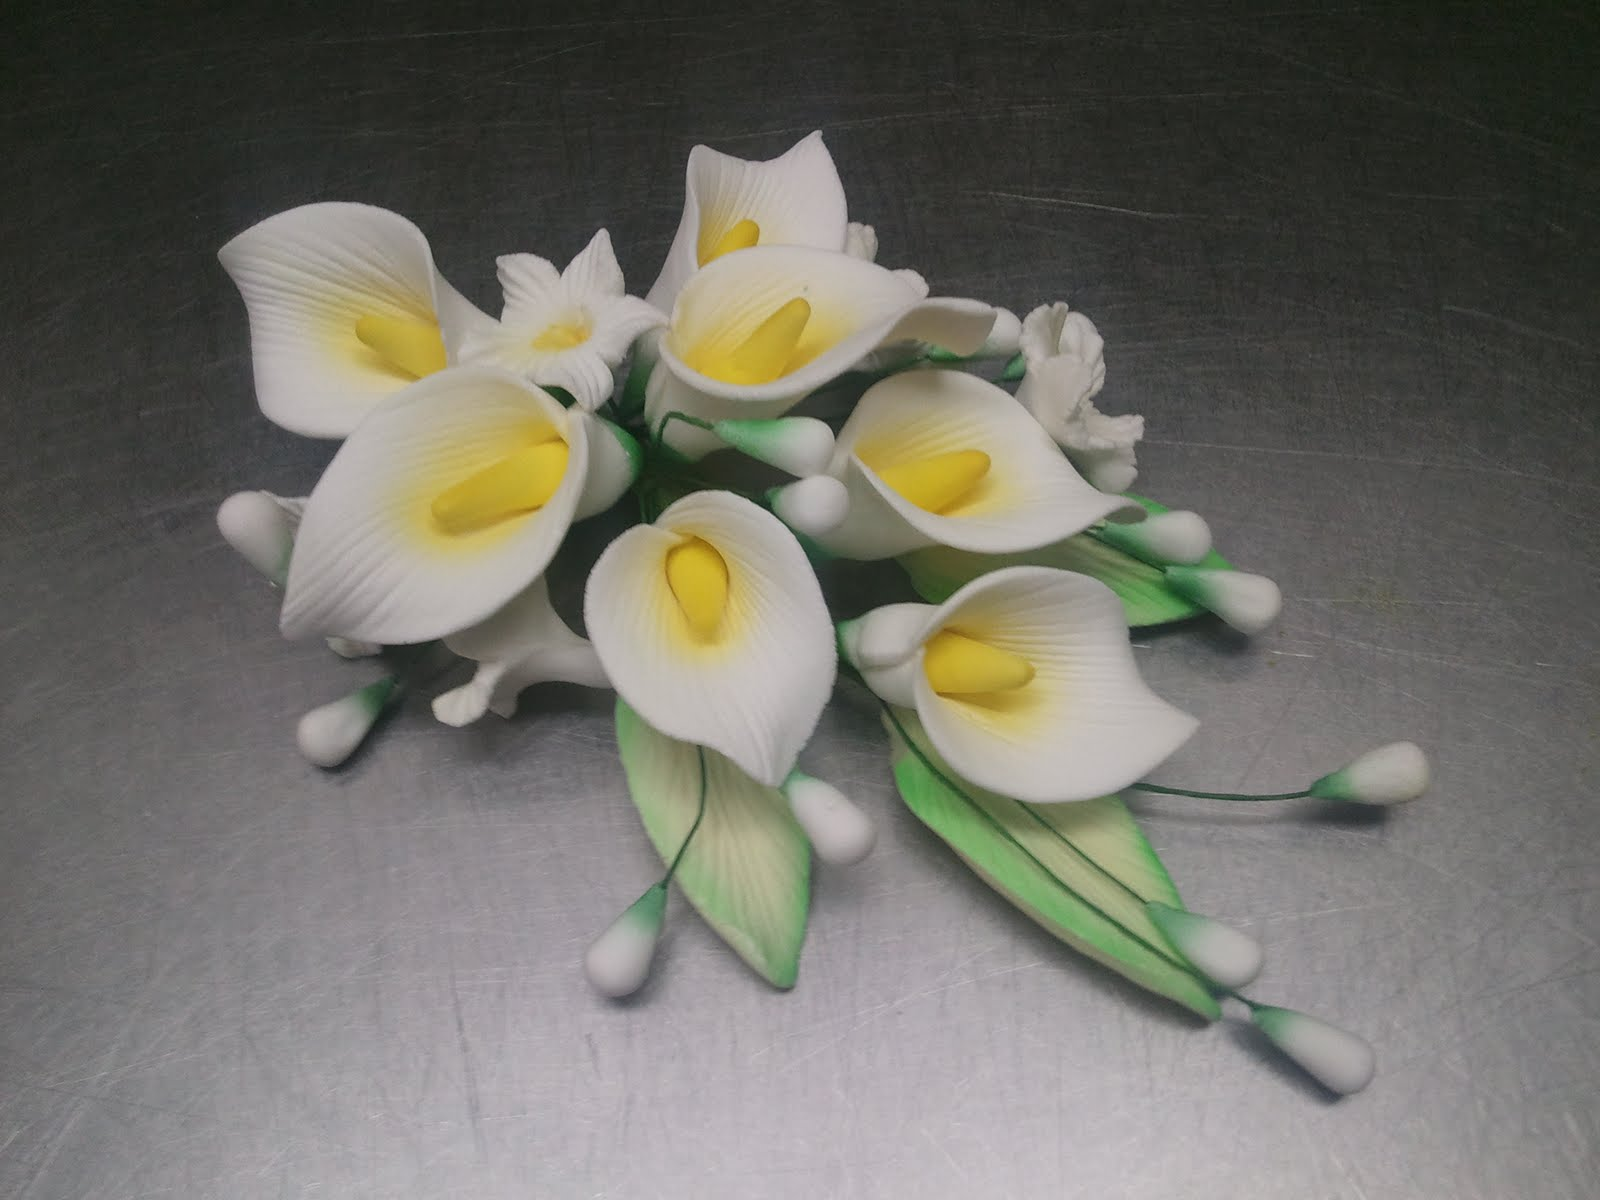 My Life as a Pastry Chef: Airbrushing Gum Paste Flowers